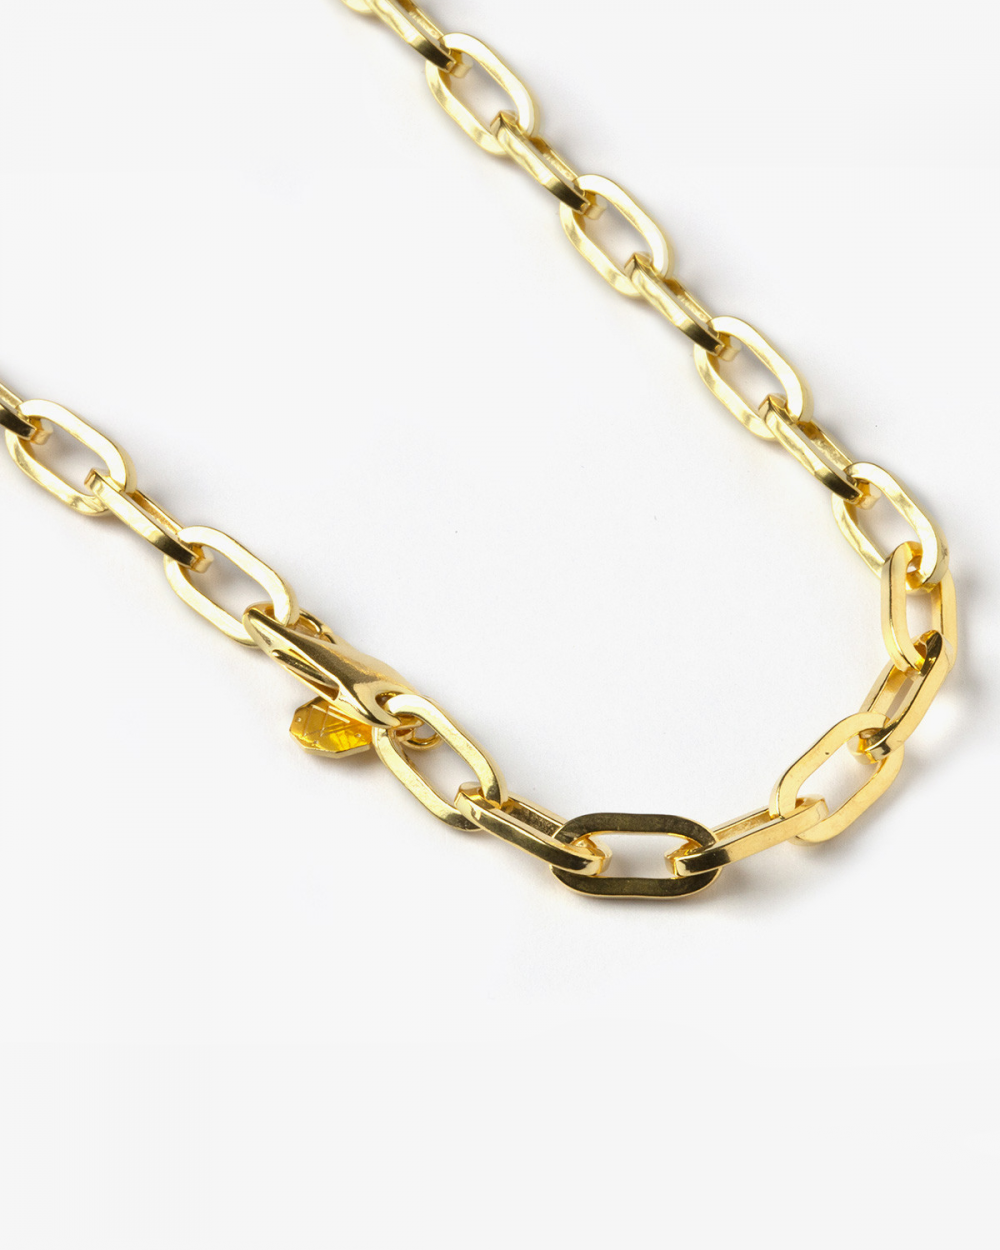 Necklaces YELLOW GOLD MEDIUM OVAL BOX CHAIN NECKLACE NOVE25